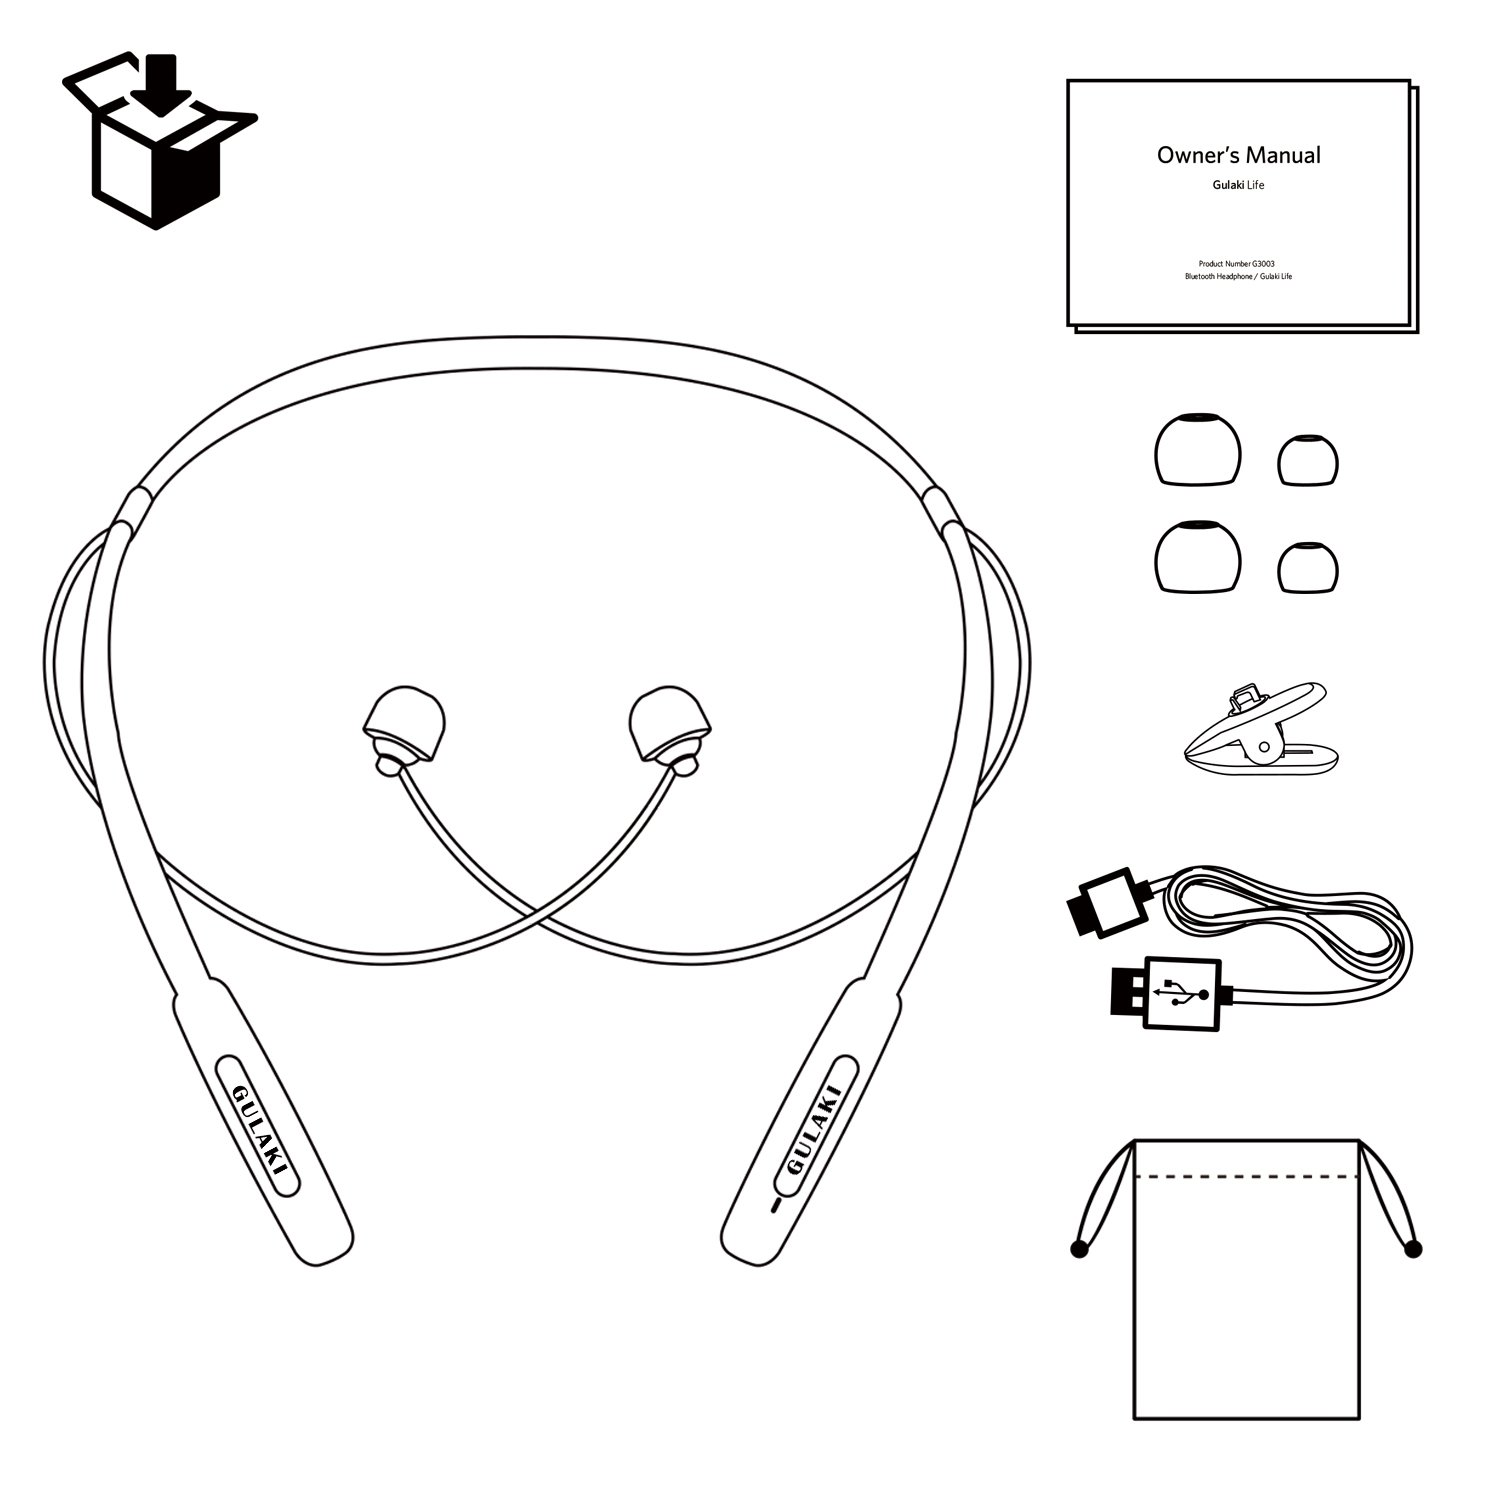 Bluetooth Headphones, GULAKI Wireless Bluetooth 4.2 Earphones Stereo Magnetic Earbuds Neckband Style Built-in Mic Fit for Sport (Black)